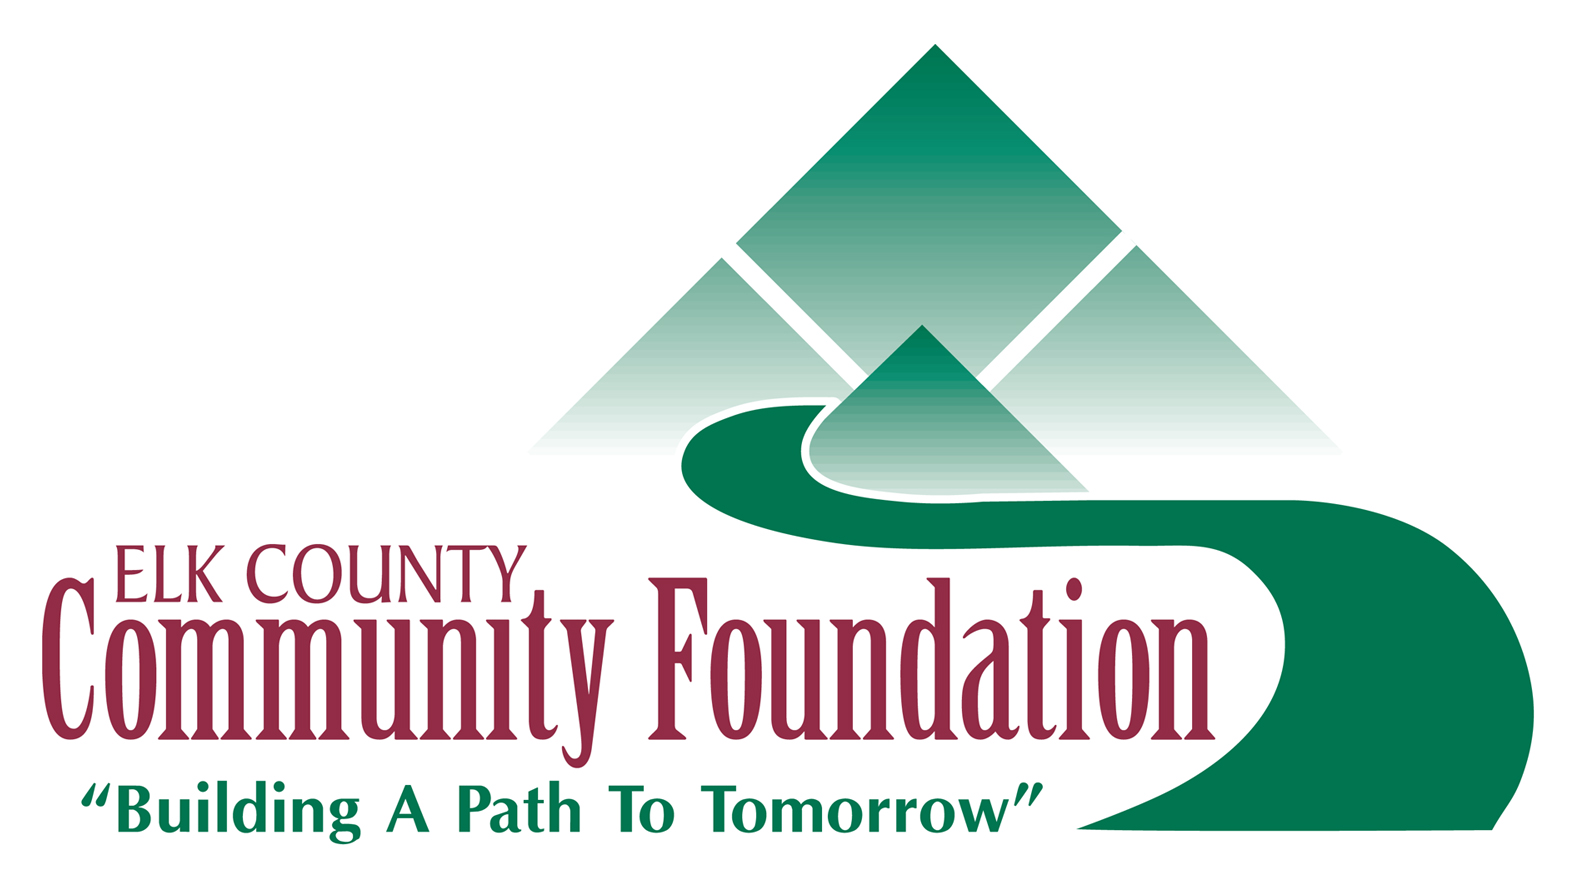 Board of Directors & Staff - Elk County Community Foundation